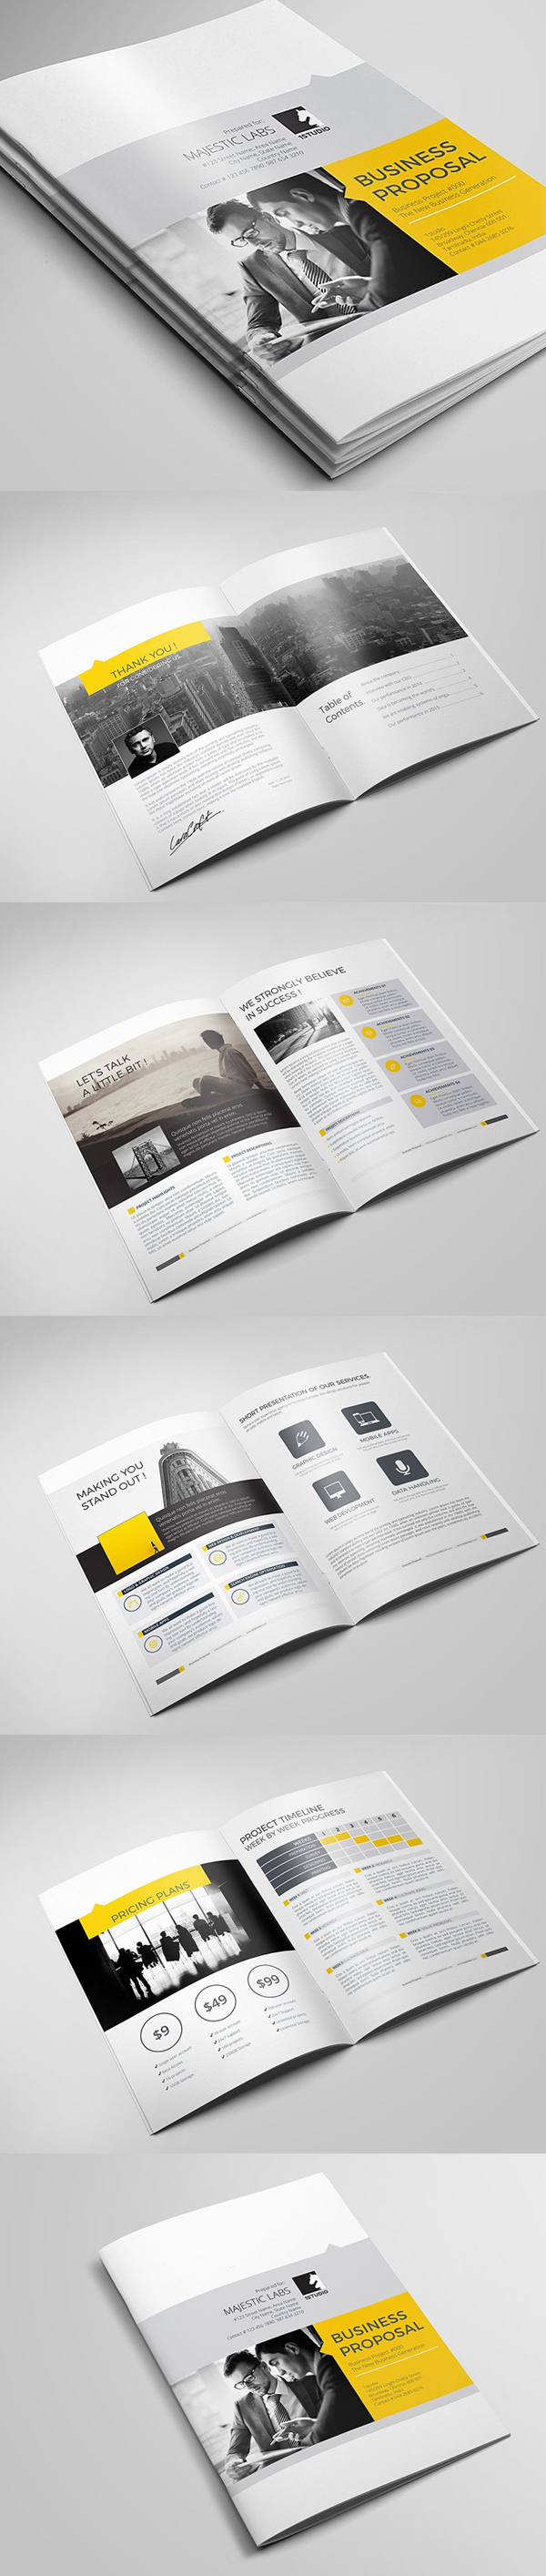 100 Professional Corporate Brochure Templates - 20